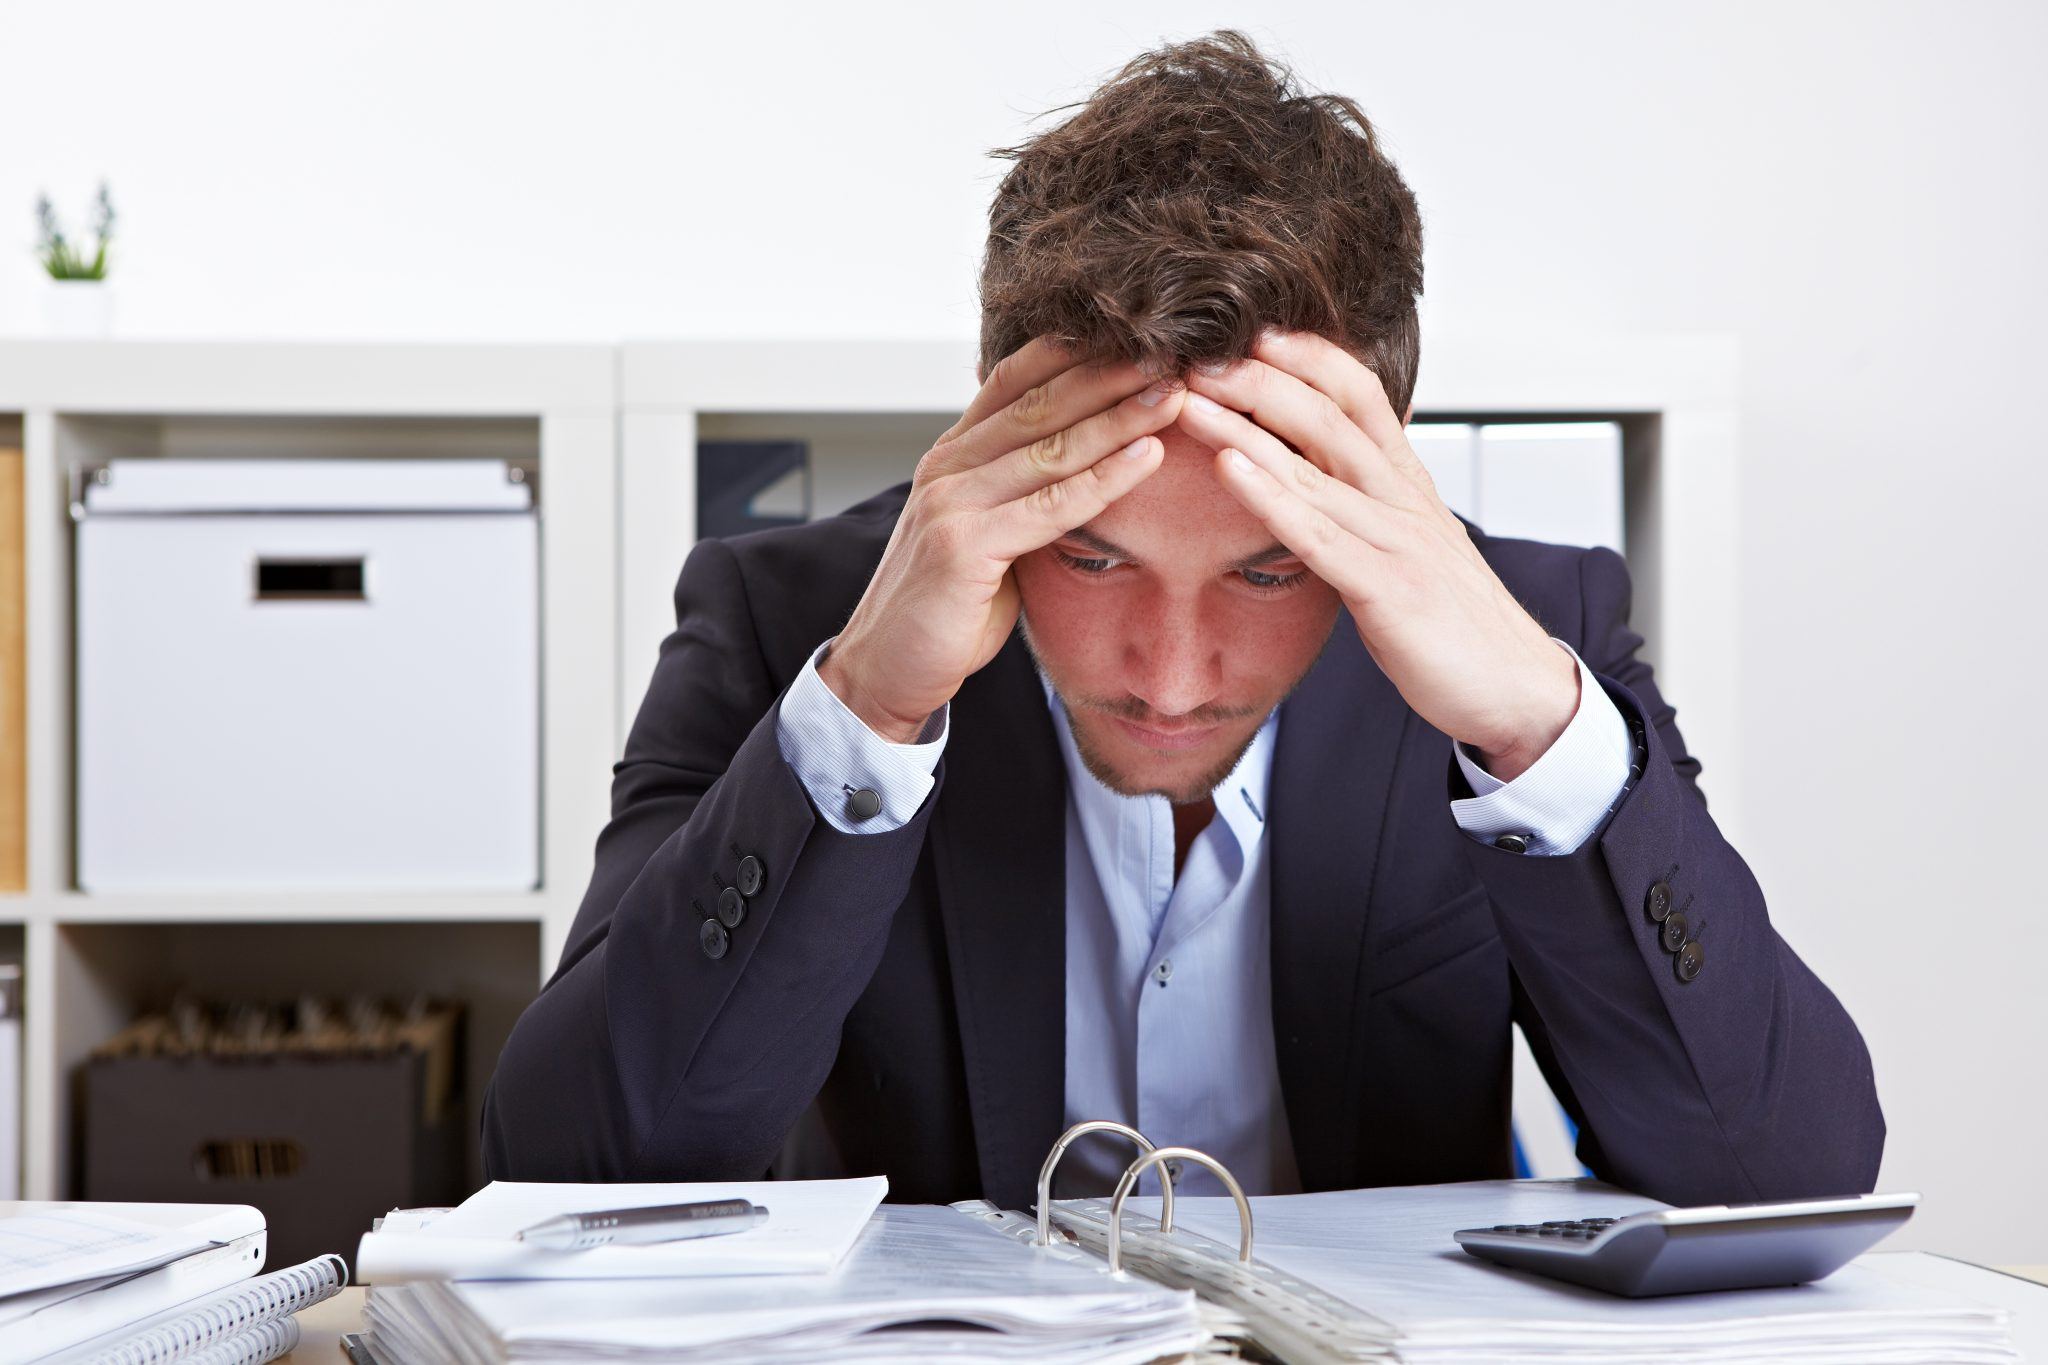 Stressed man in the workplace